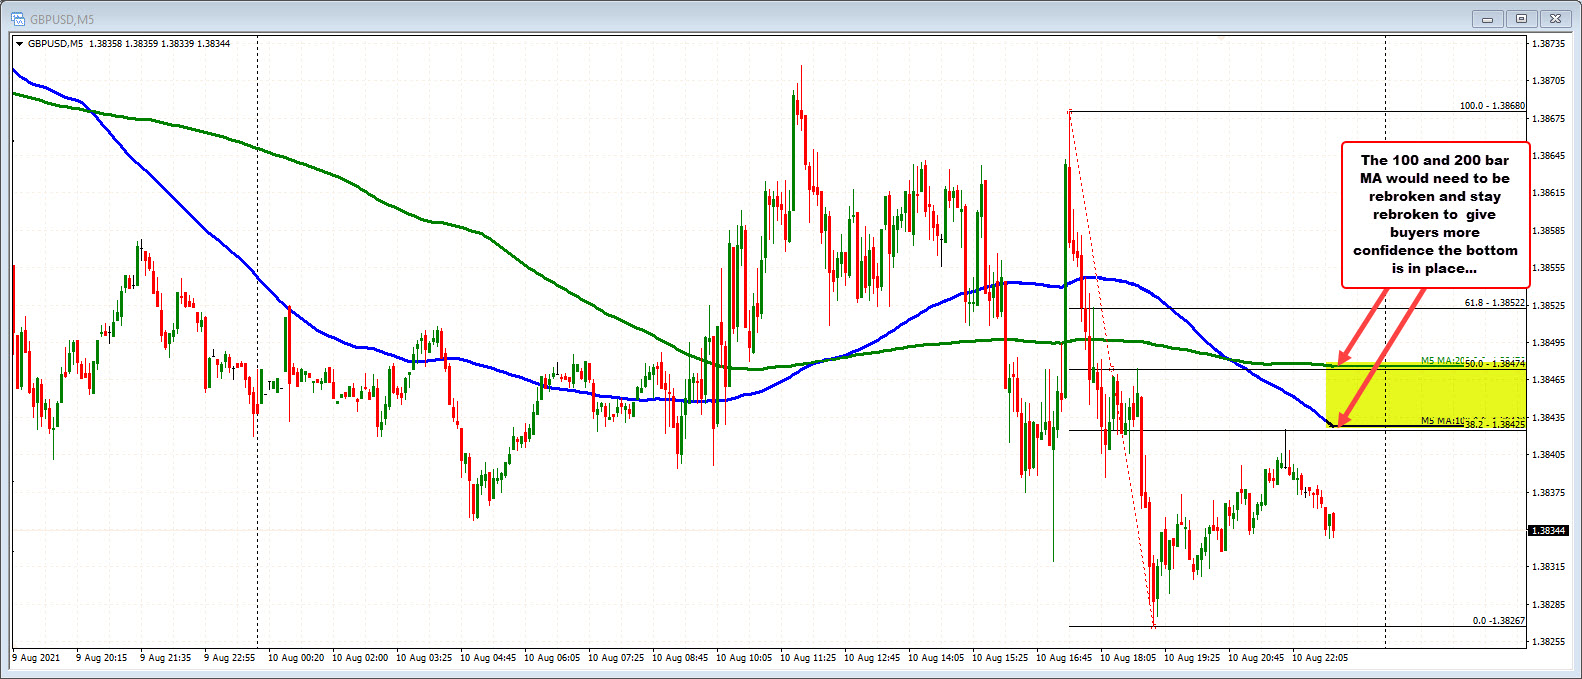 GBPUSD on the 5 minute